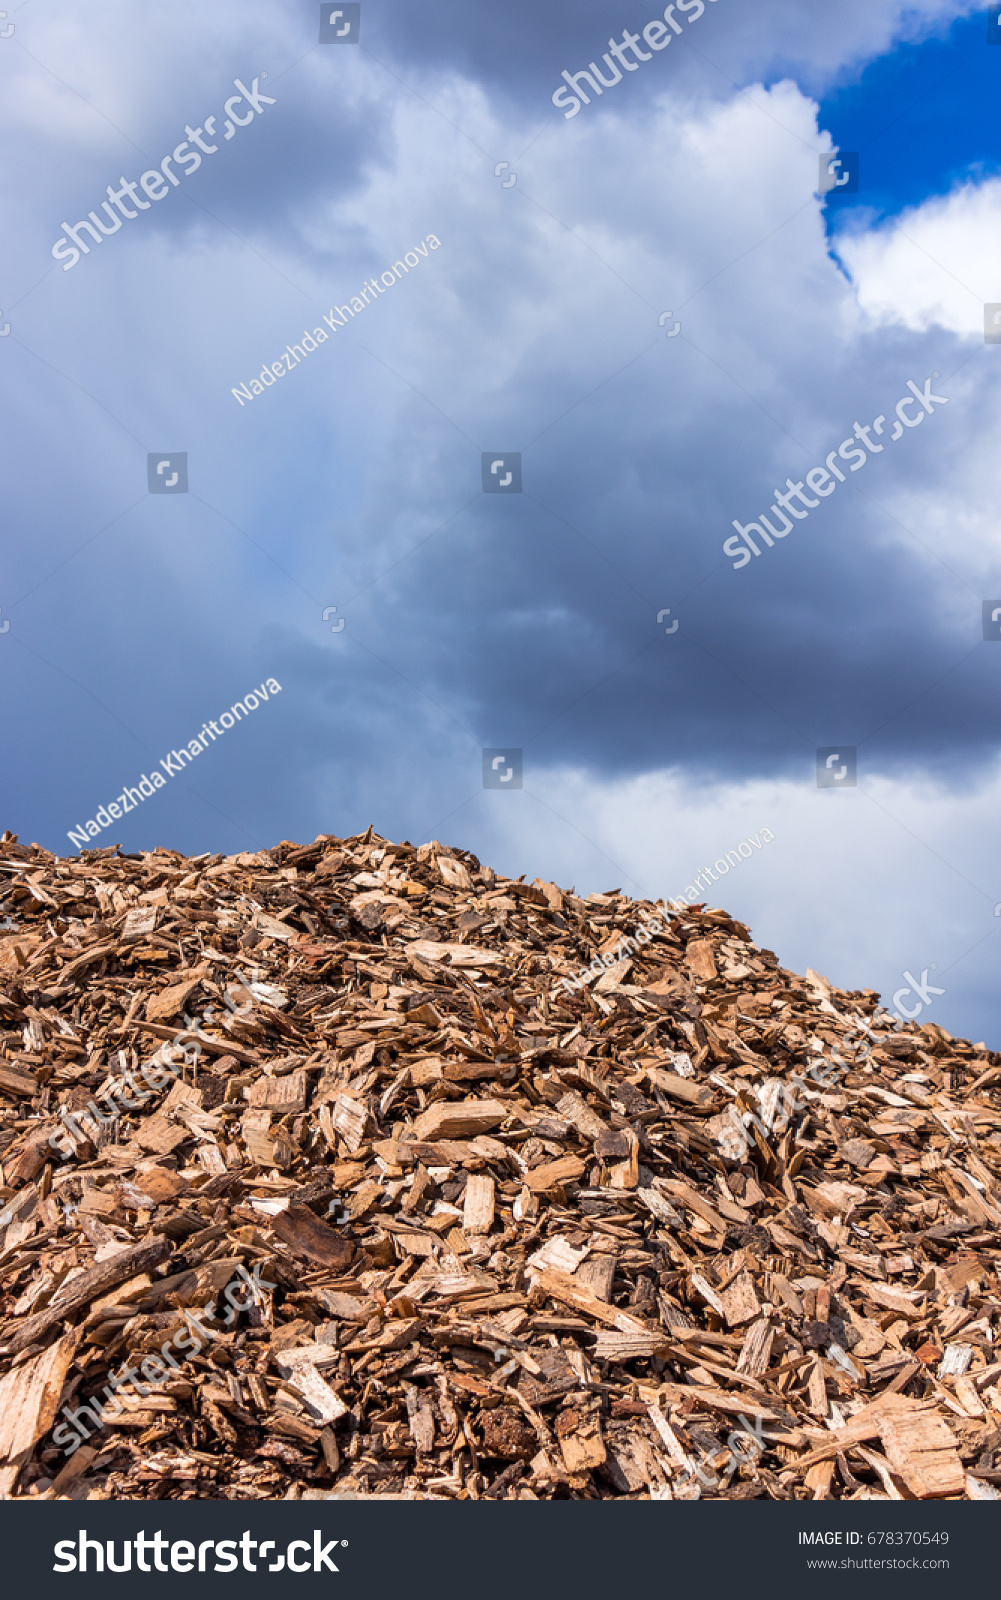 View on a large big pile of wooden splinters with blue sky on the  background.